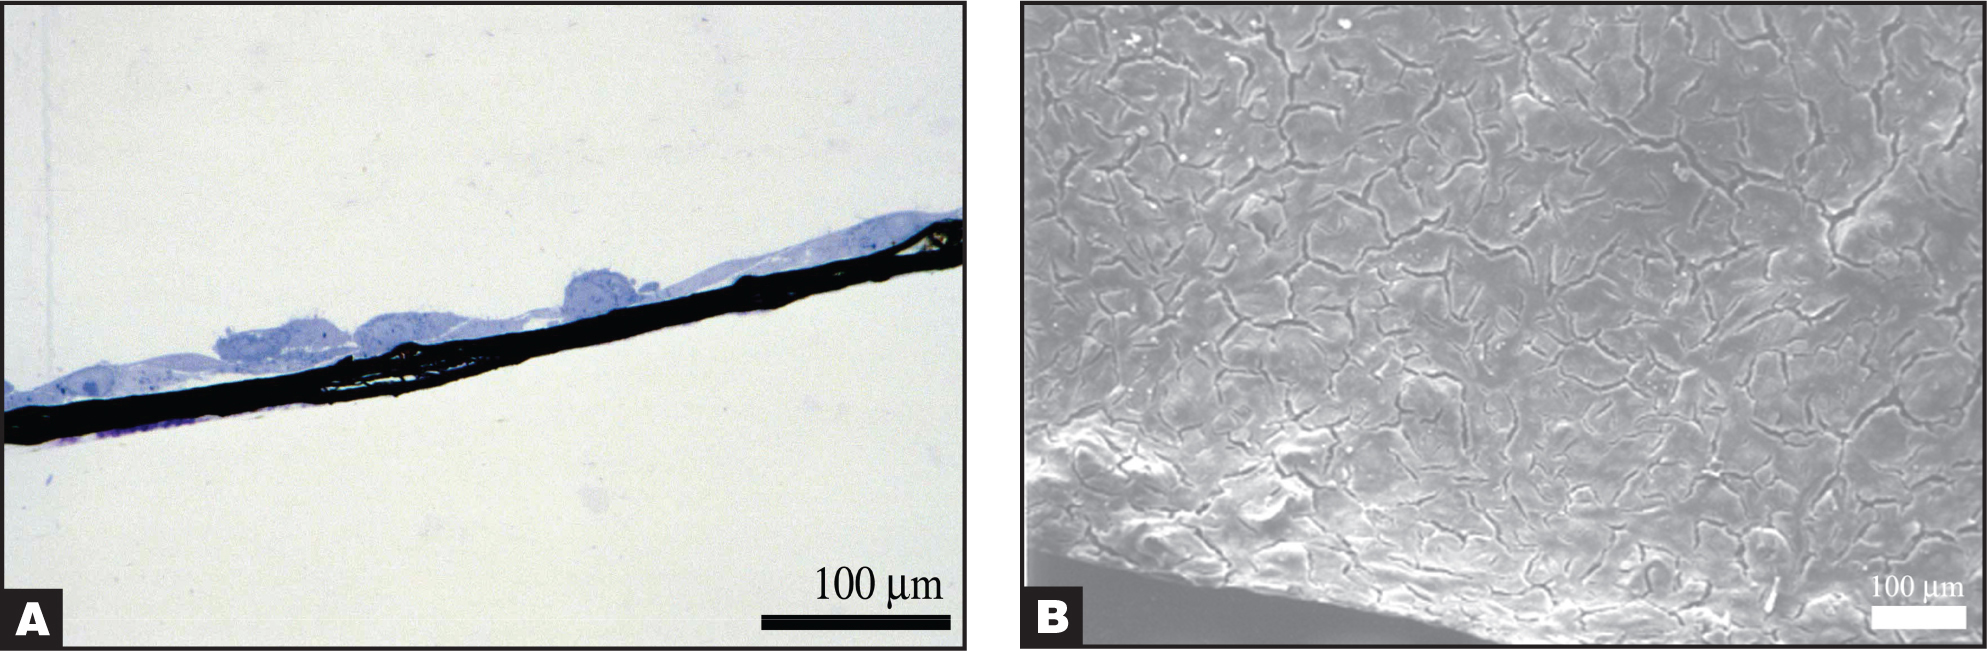 (A) Light micrograph of a histological cross-section of human retinal pigment epithelium cells cultured on bucky paper at day 7 (original magnification 60×). Note the single monolayer with overlapping cellular processes indicating the healthy formation of intercellular junctions. (B) Scanning electron micrograph of human retinal pigment epithelium cells cultured on bucky paper at day 7. The cells form a confluent monolayer and exhibit good growth characteristics.